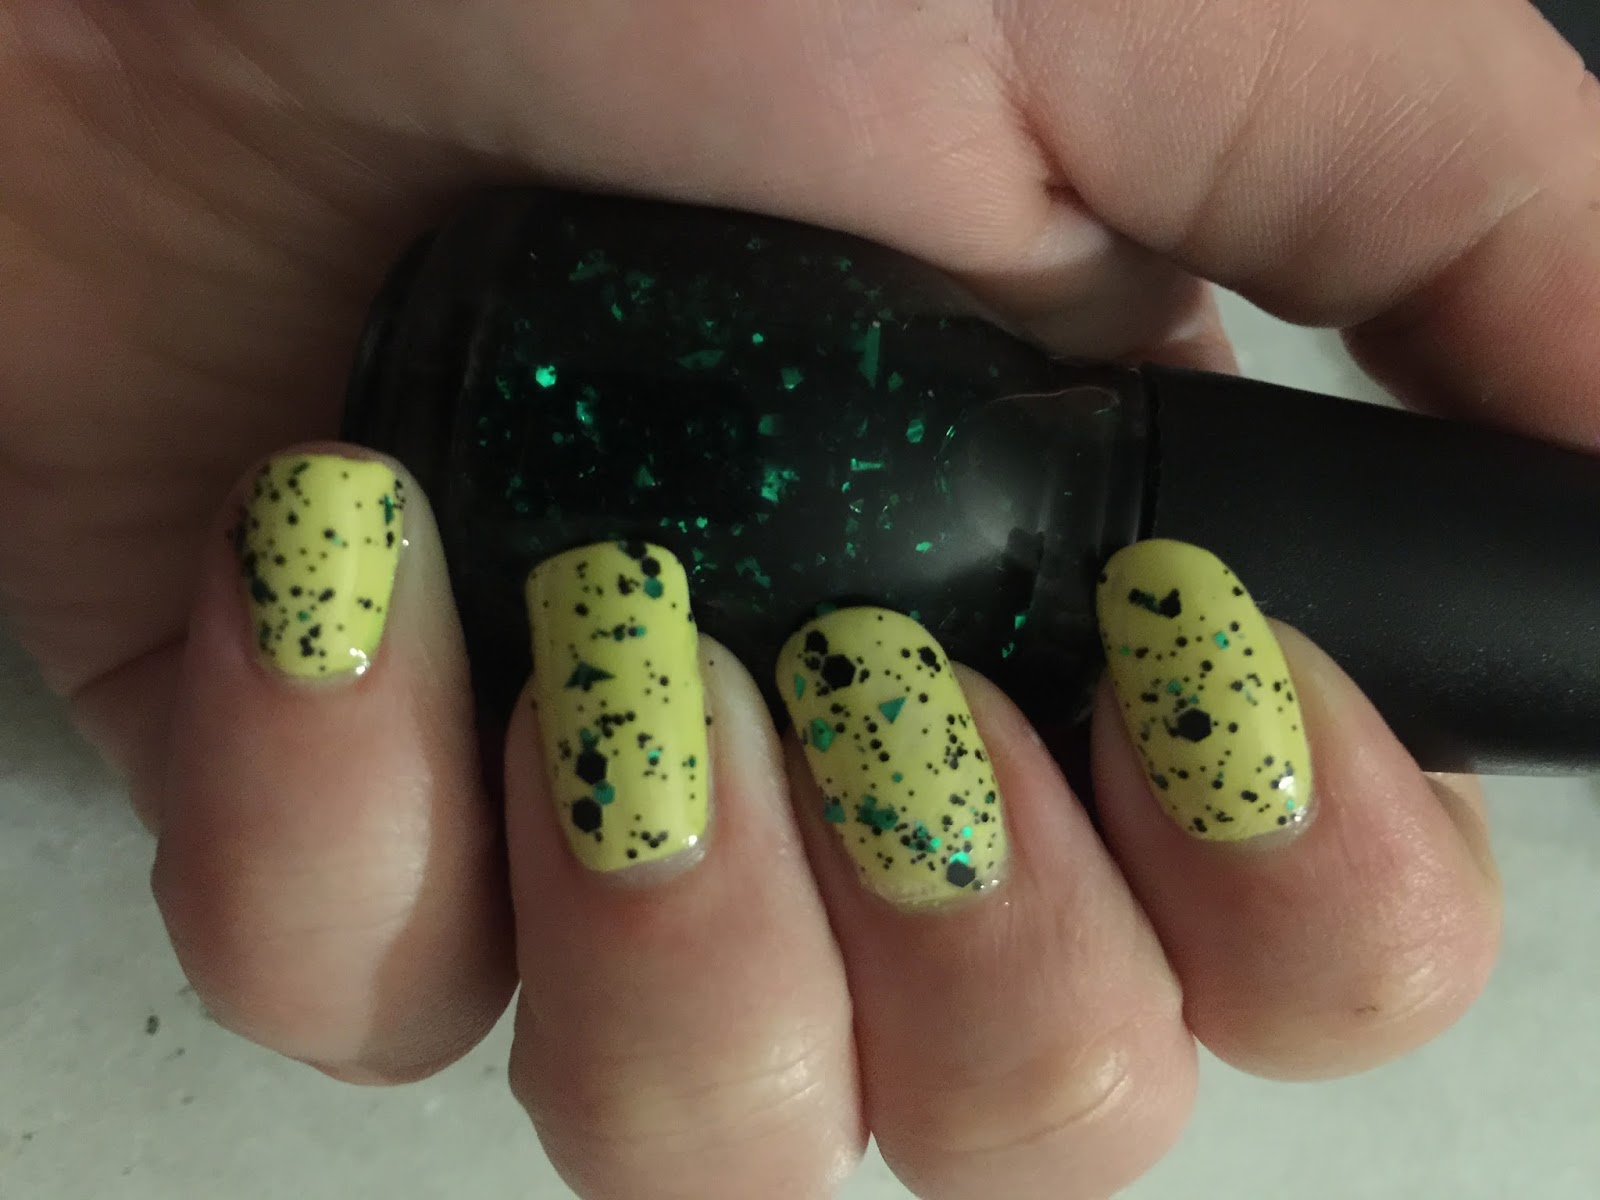 SinfulColors cauldron couture